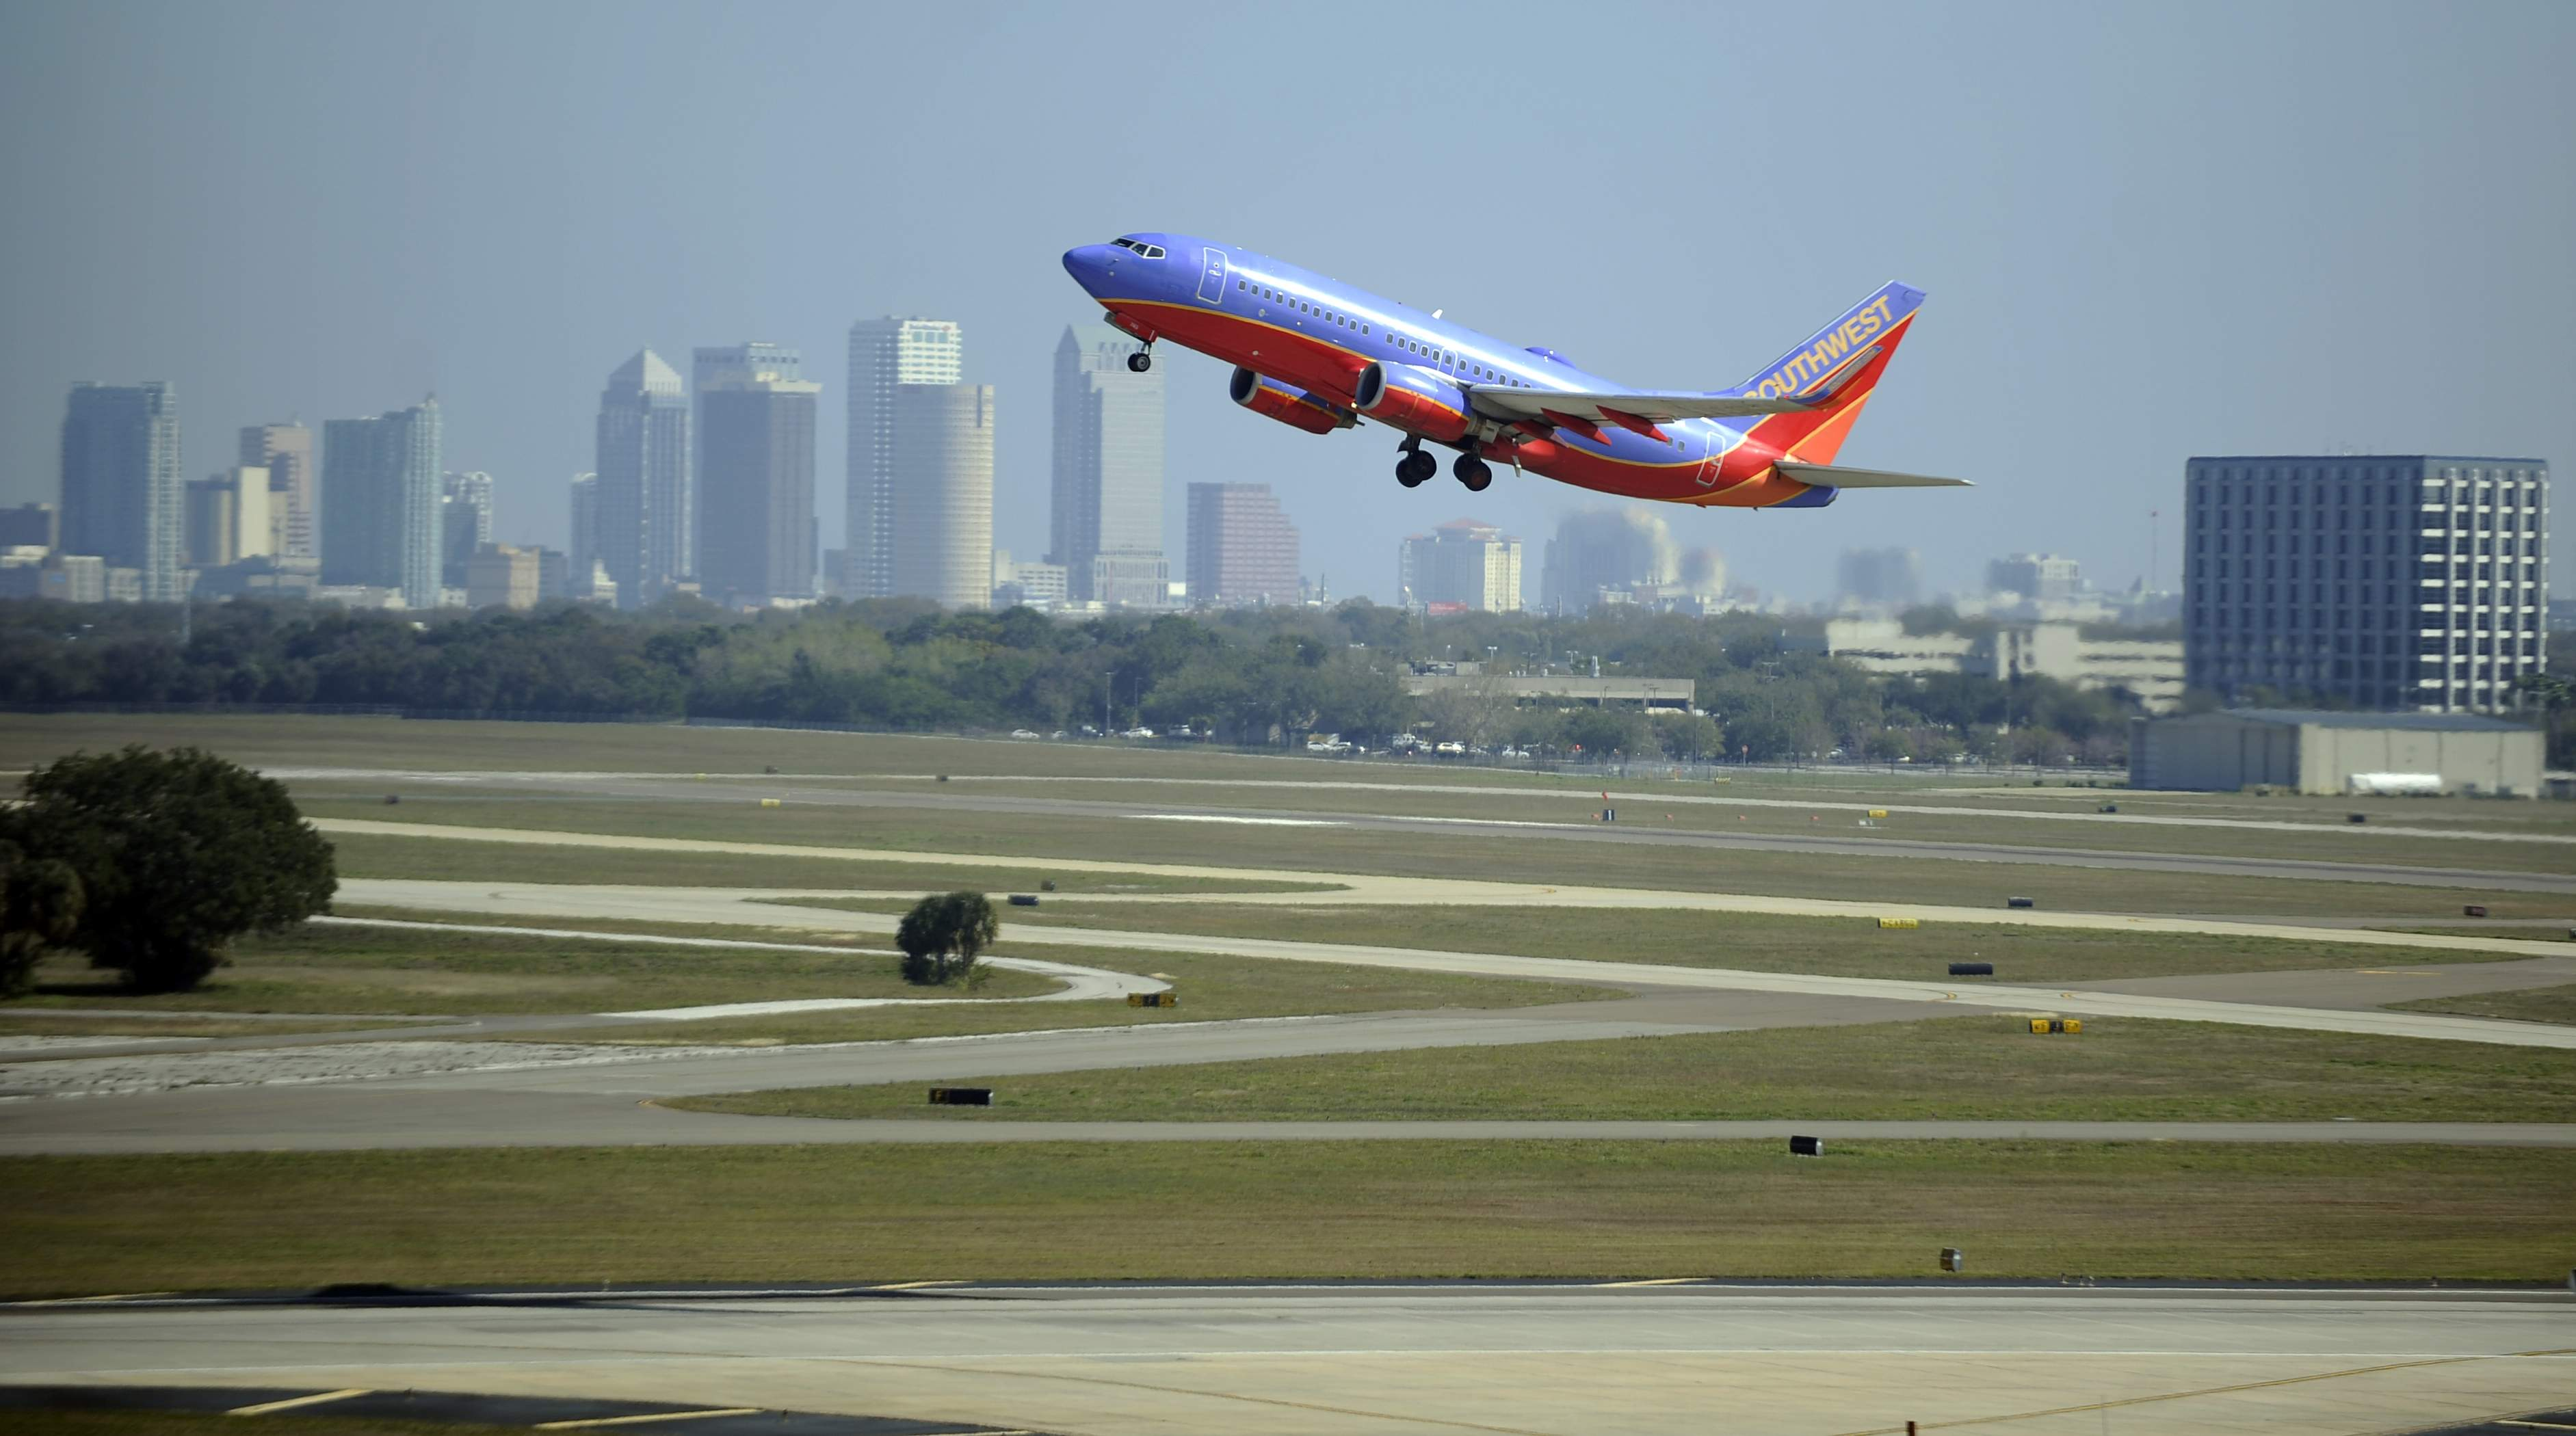 Airlines that fly to cancun from sfo